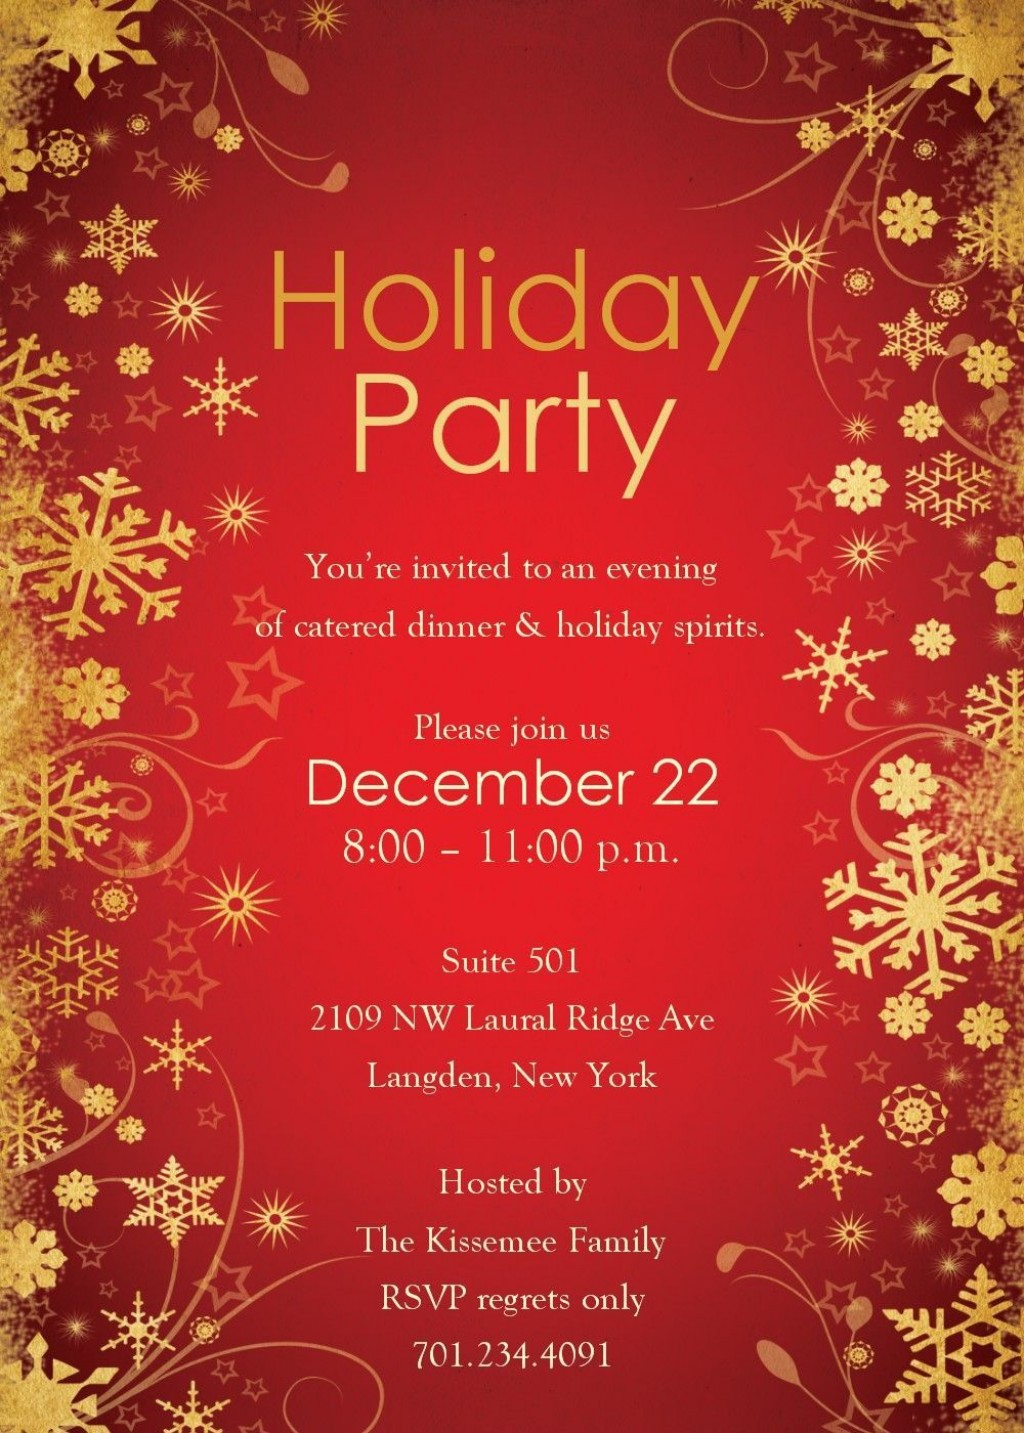 005 Unusual Xma Party Invite Template Free Highest Quality  Holiday Invitation Word Download ChristmaLarge